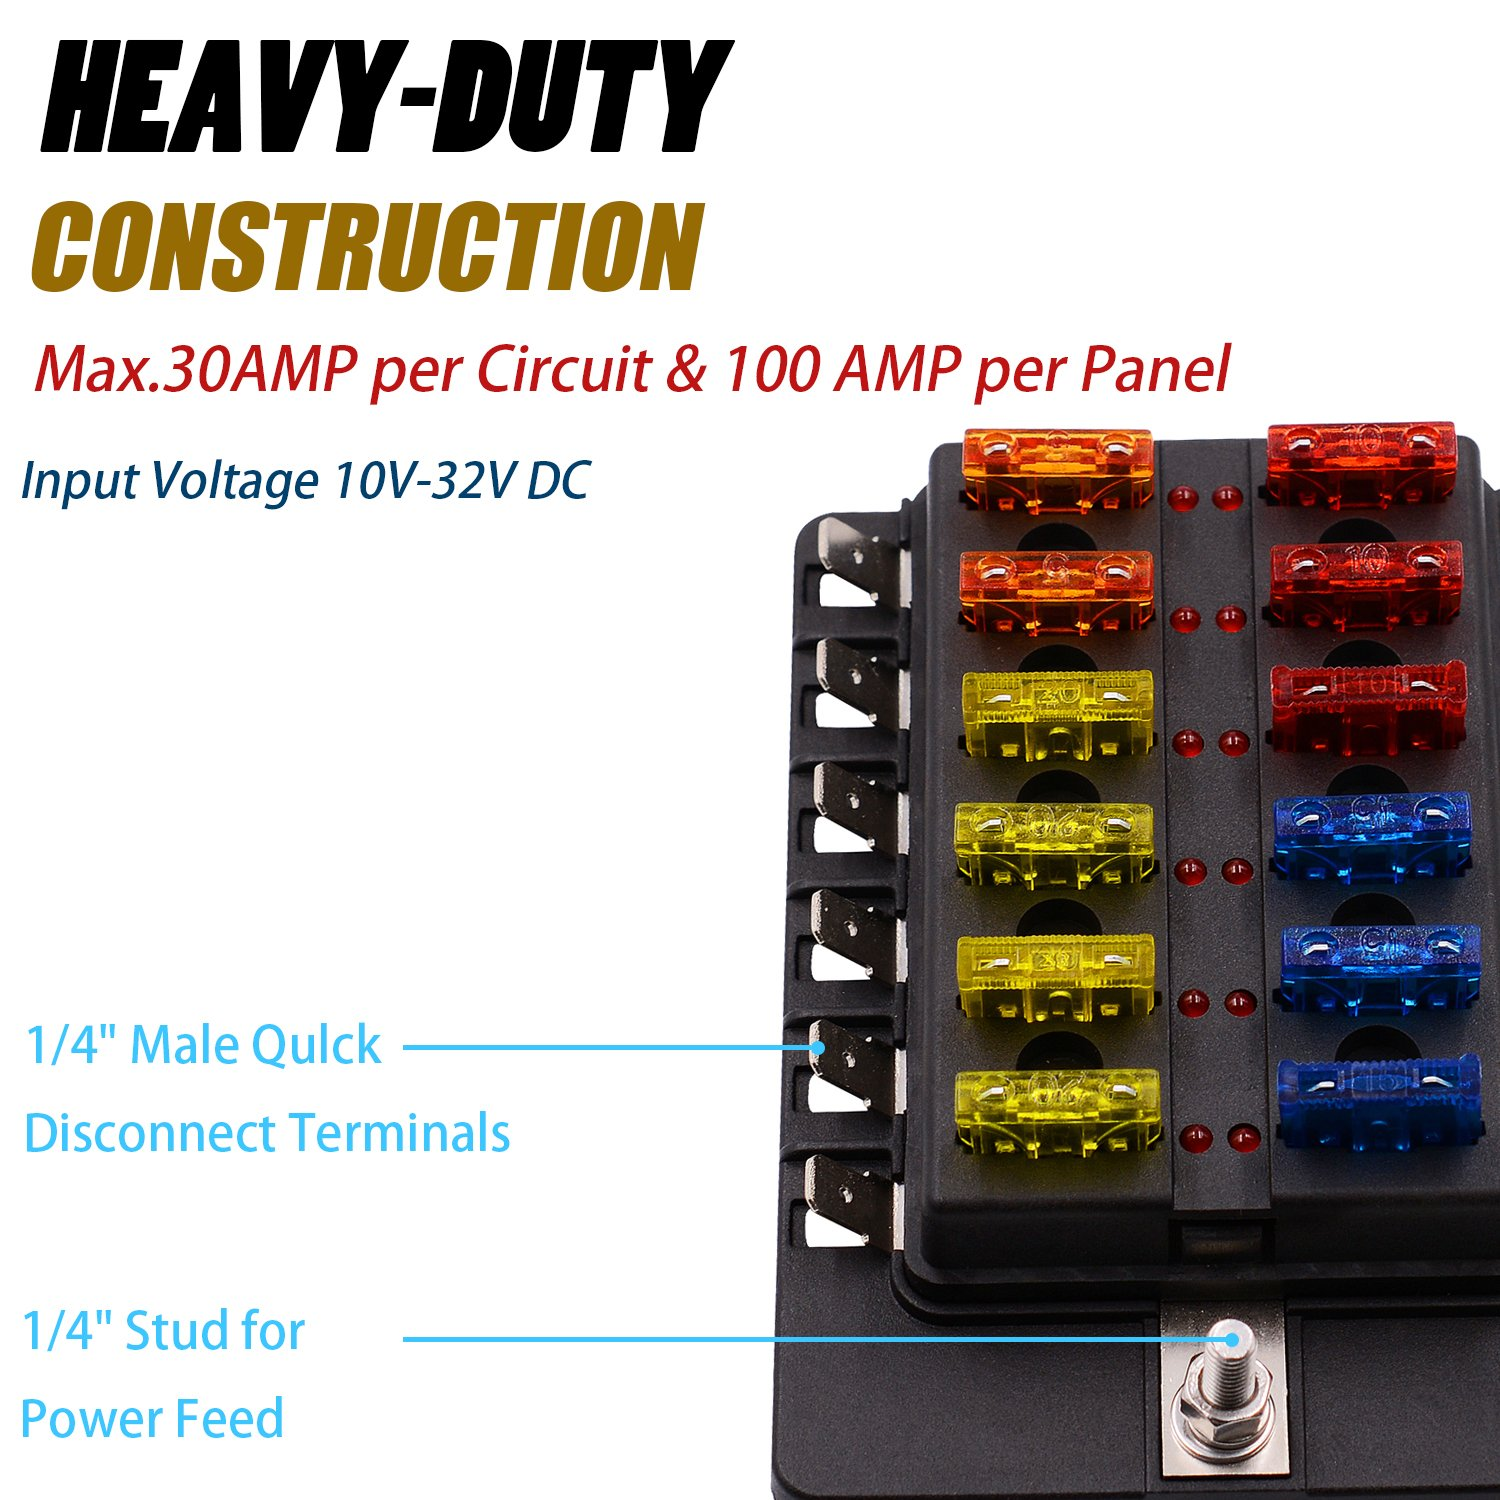 Bluefire 12 Way 30a 32v Blade Fuse Box Board With 24pcs Led Car Voltage Warning Light For Marine Boats Automotive Trike Csk82 Bf Electronics Features